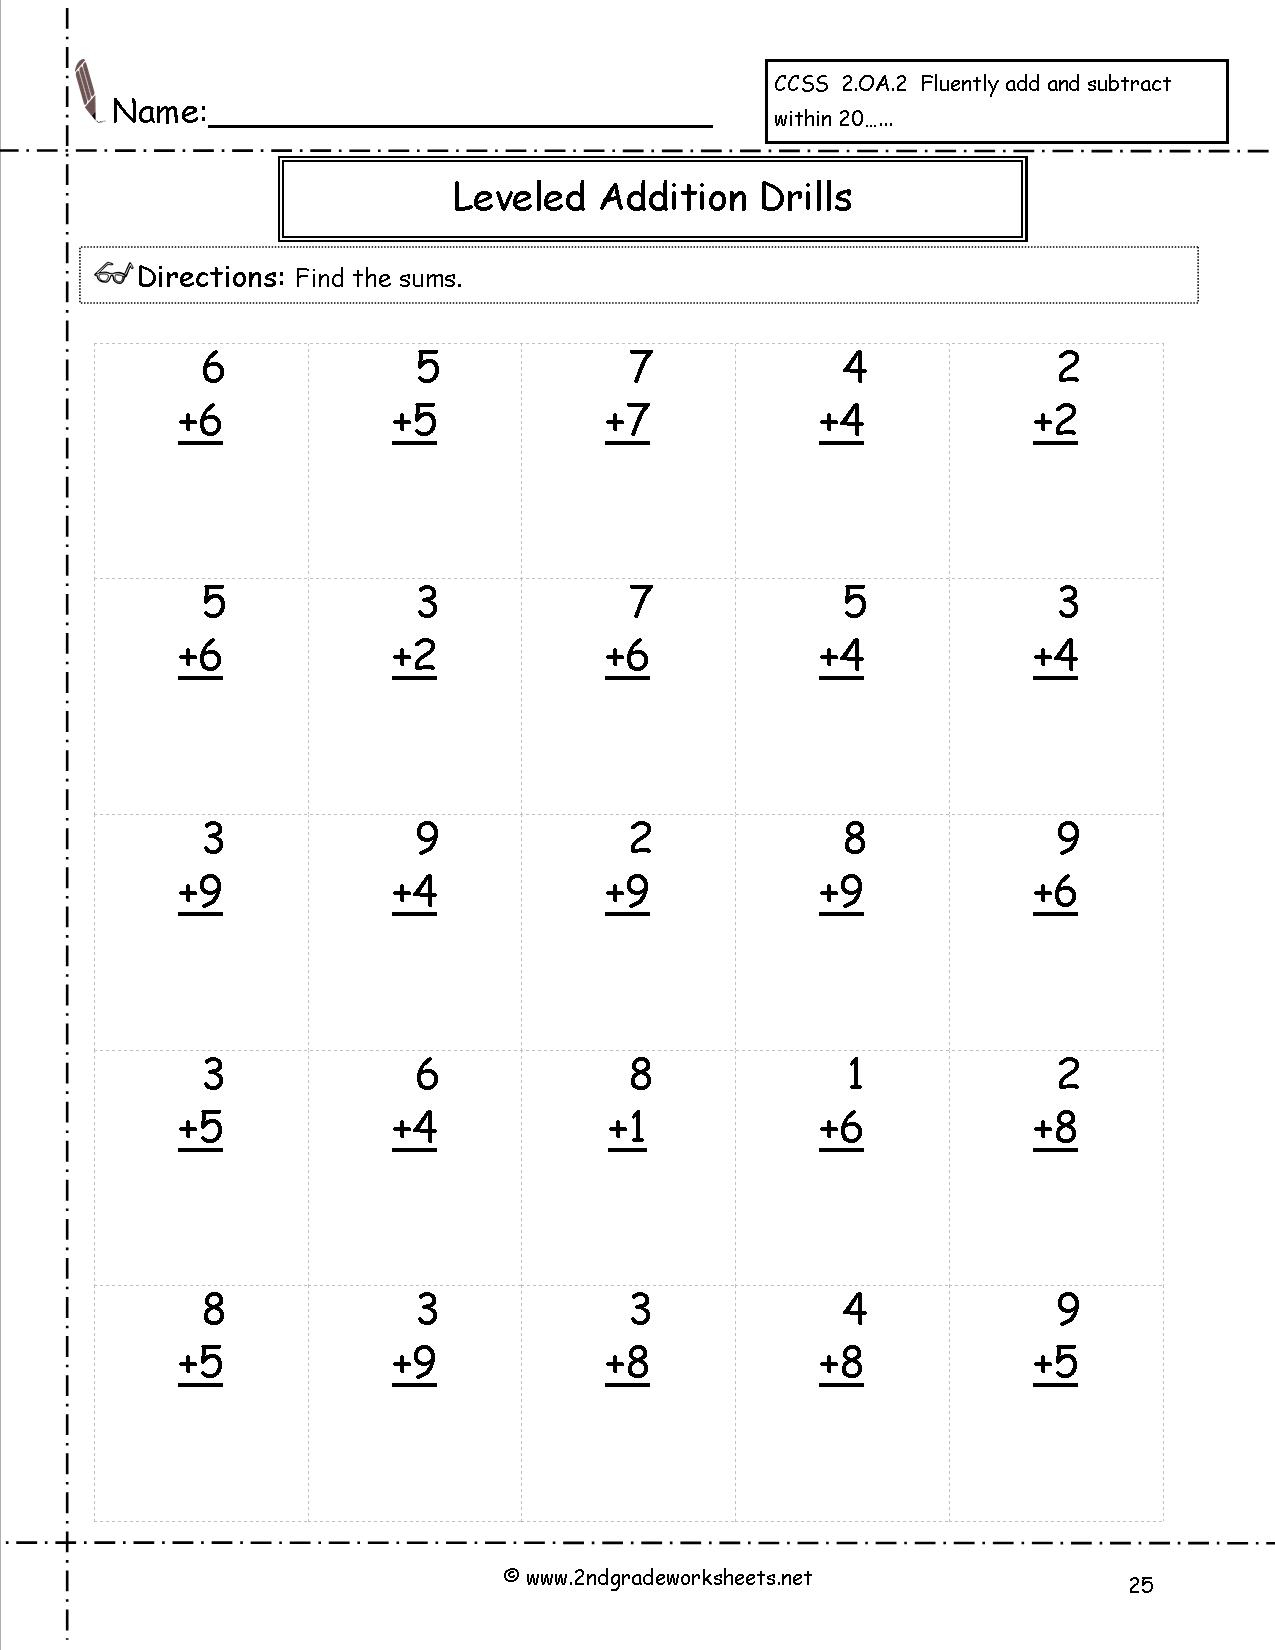 Free Math Worksheets And Printouts | Printable Second Grade Math Worksheets